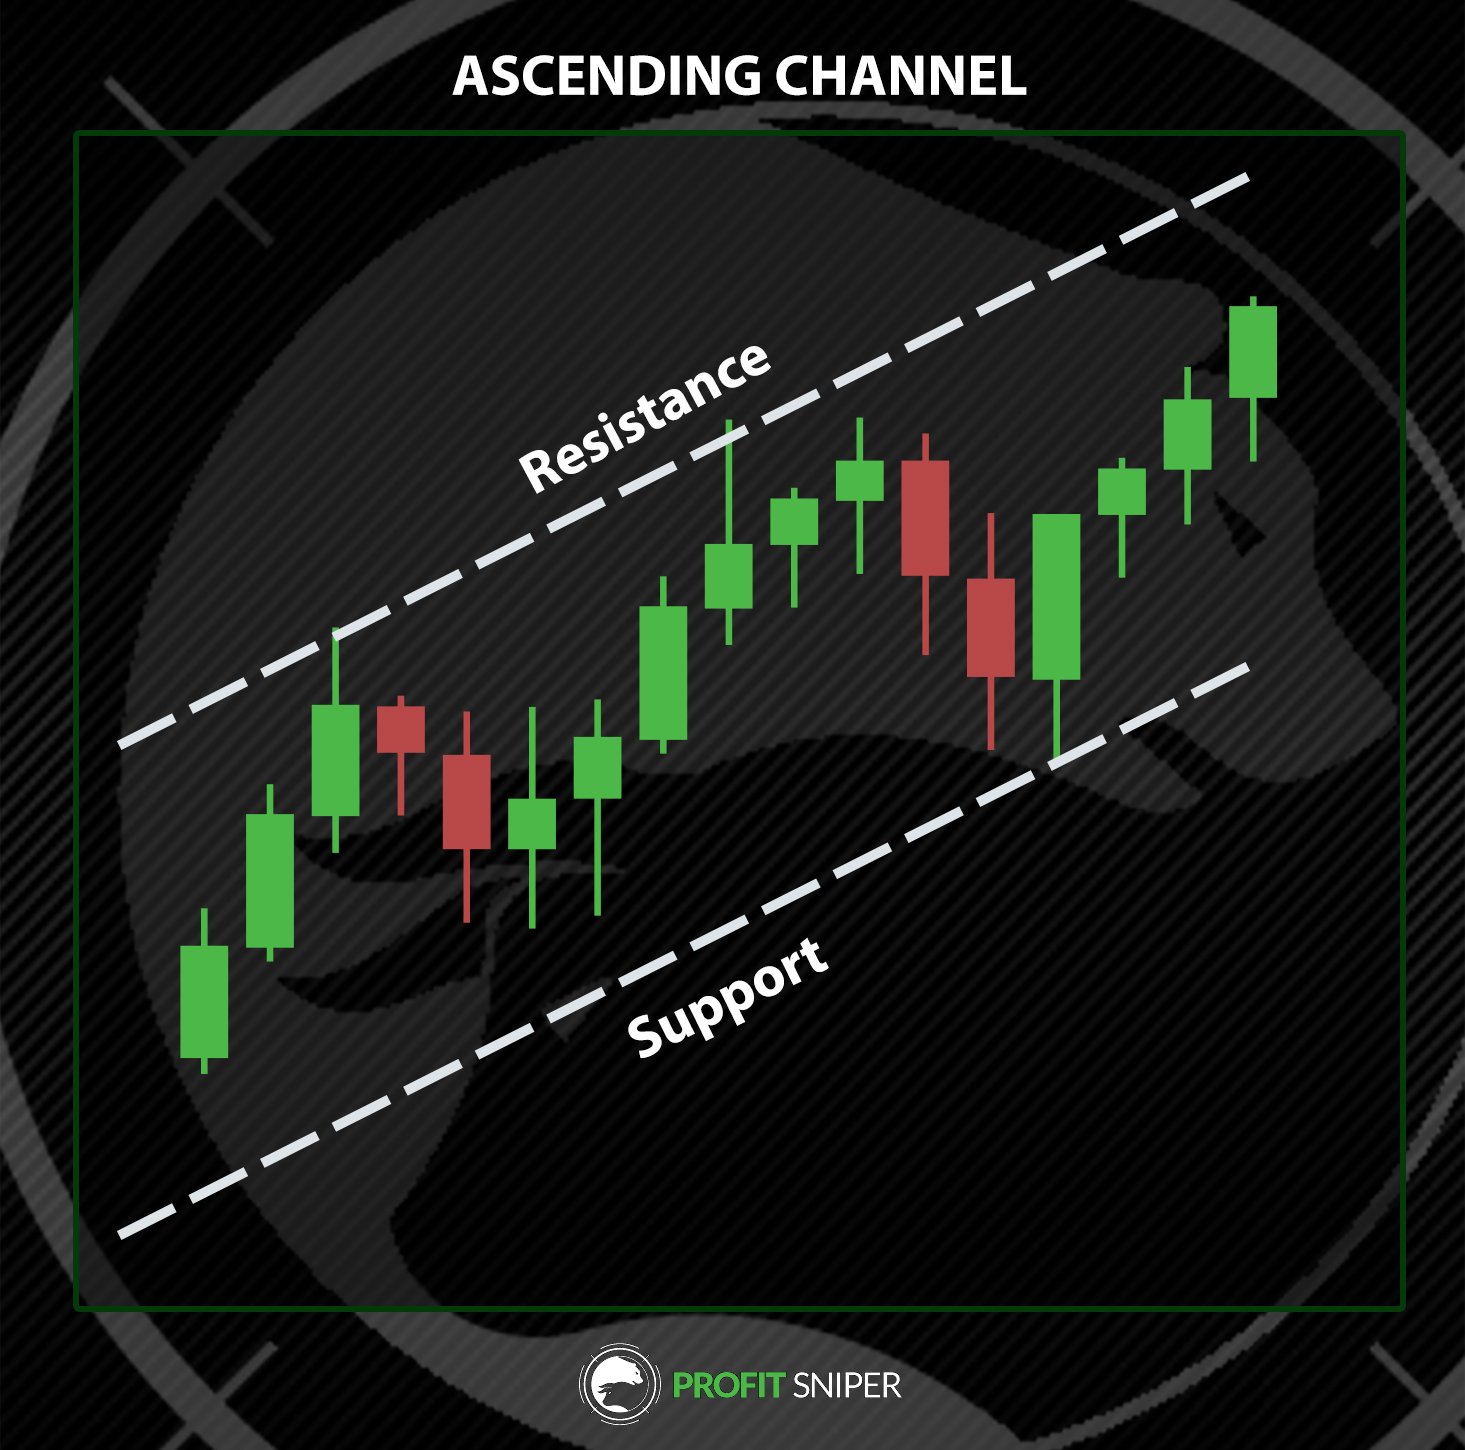 Ascending Channel in Crypto Trading